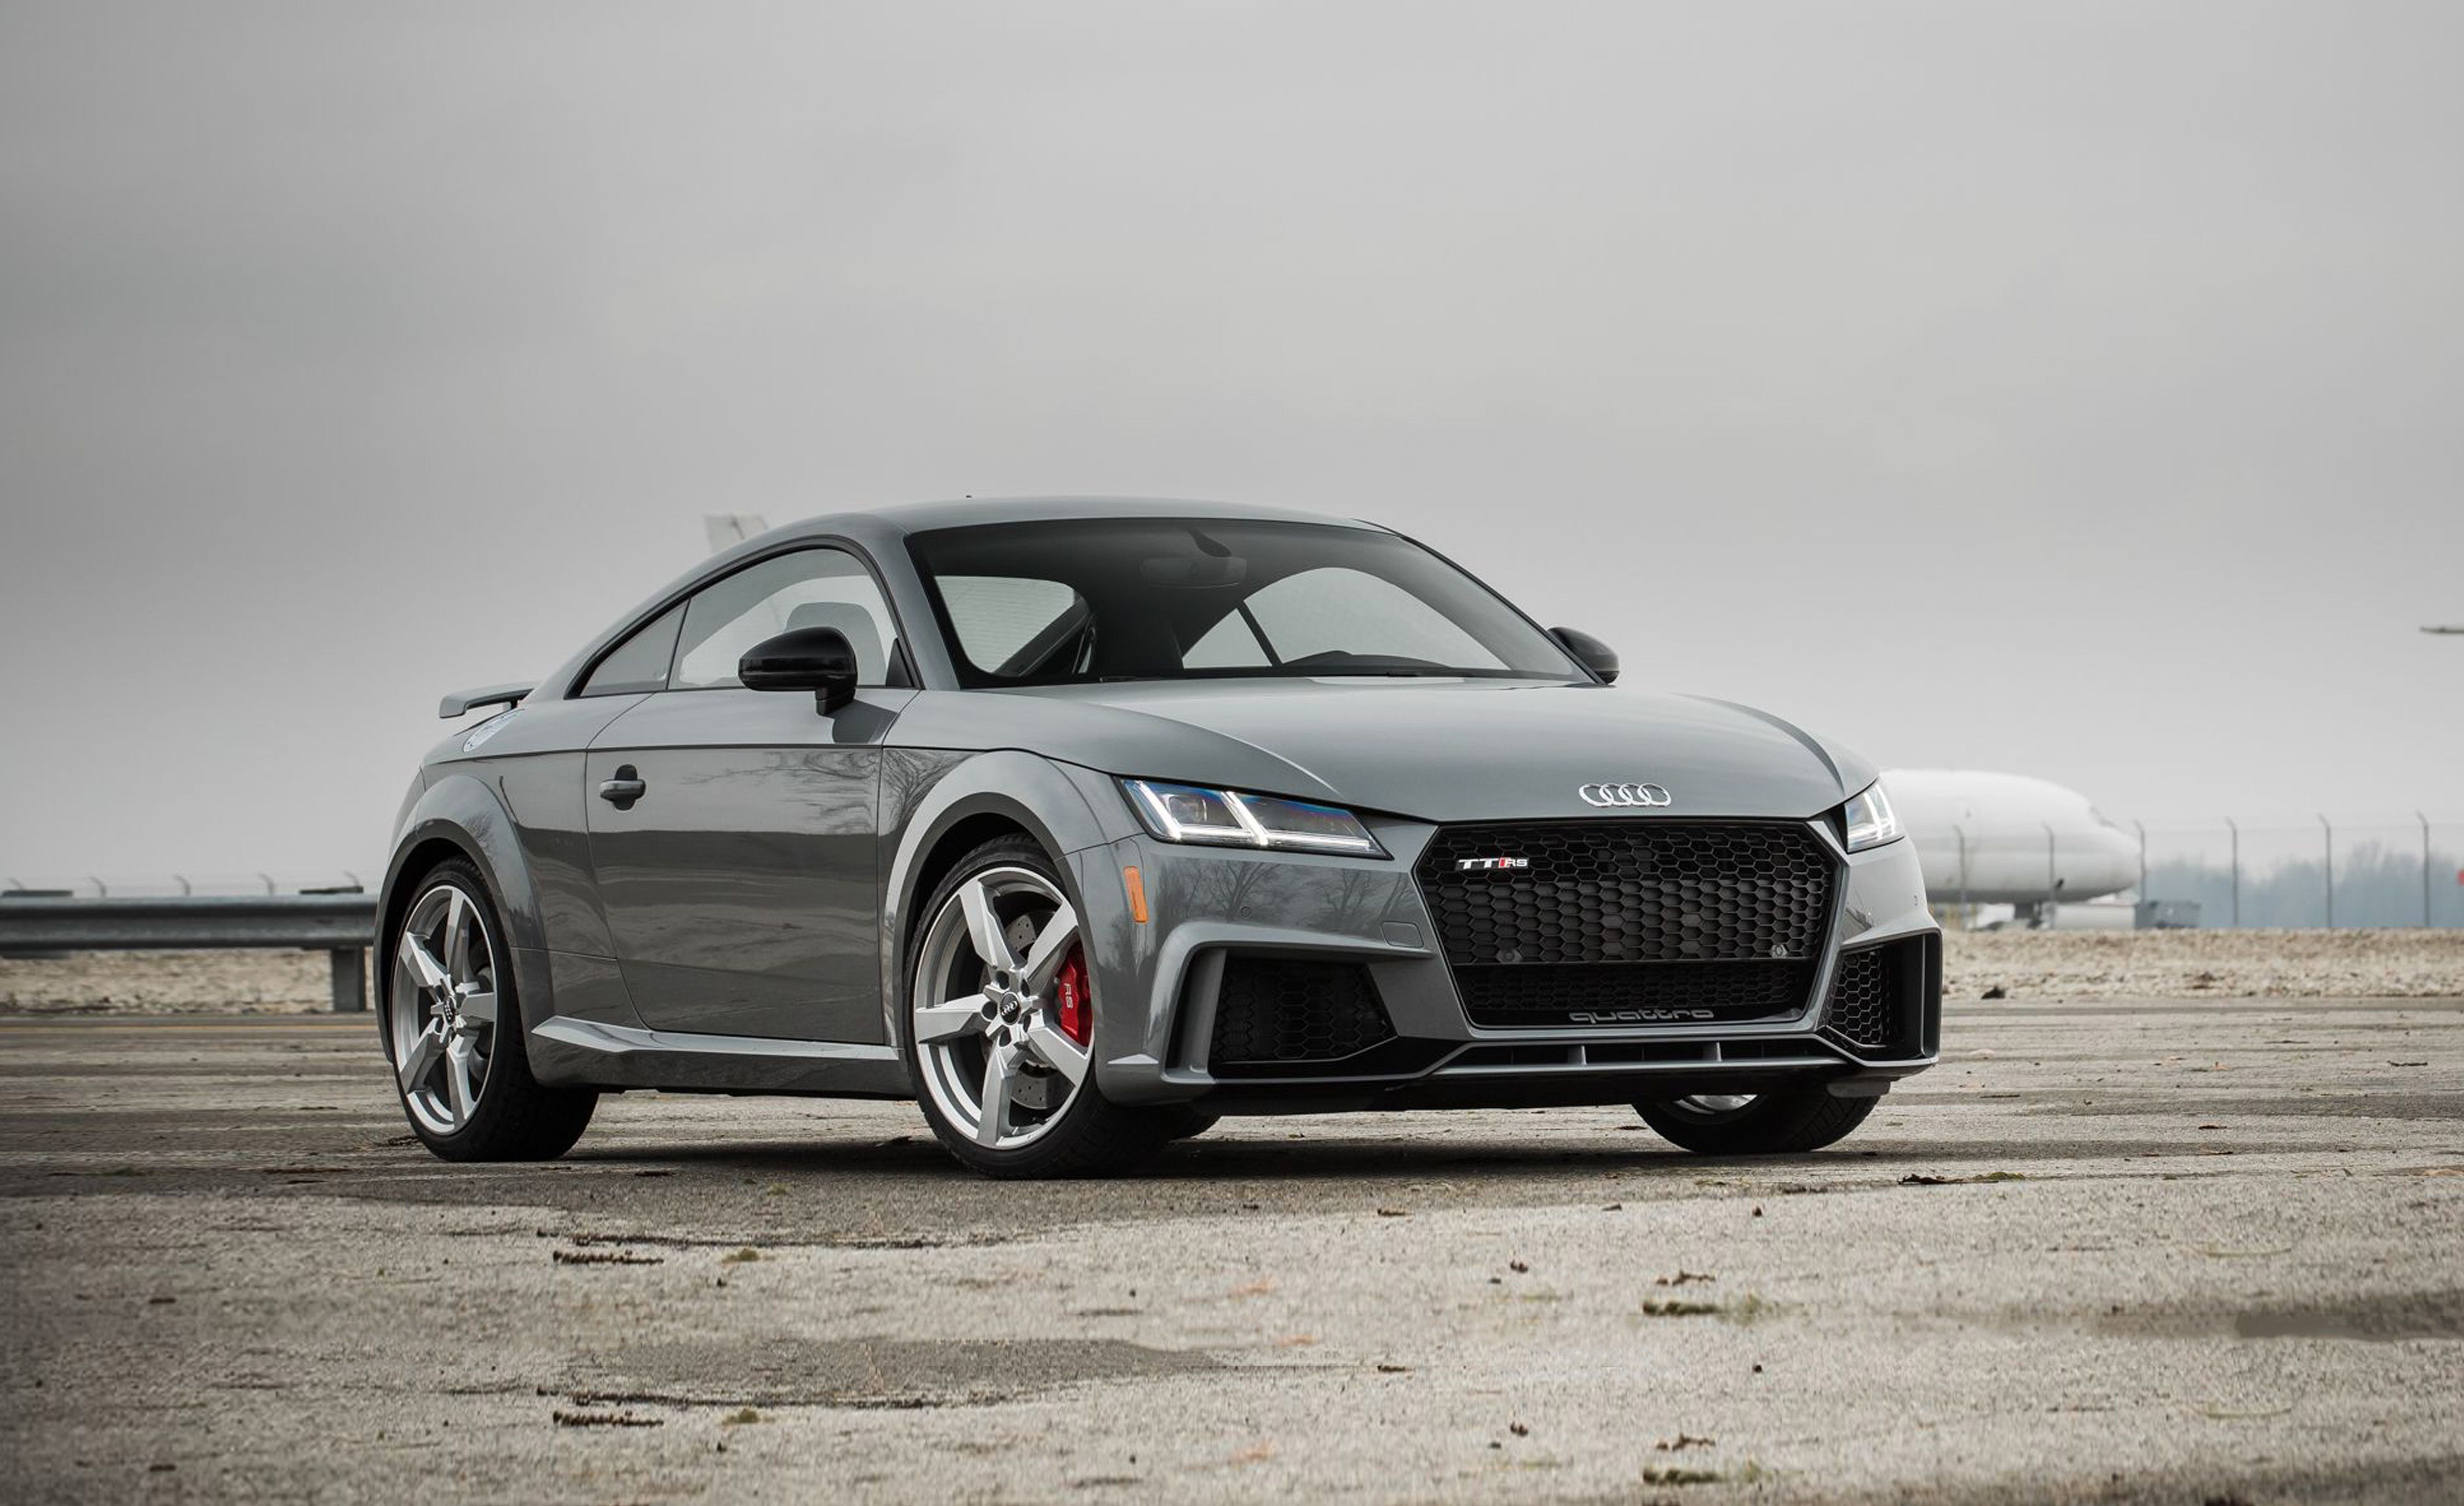 2019 Audi TT RS Reviews   Audi TT RS Price, Photos, and Specs   Car and Driver